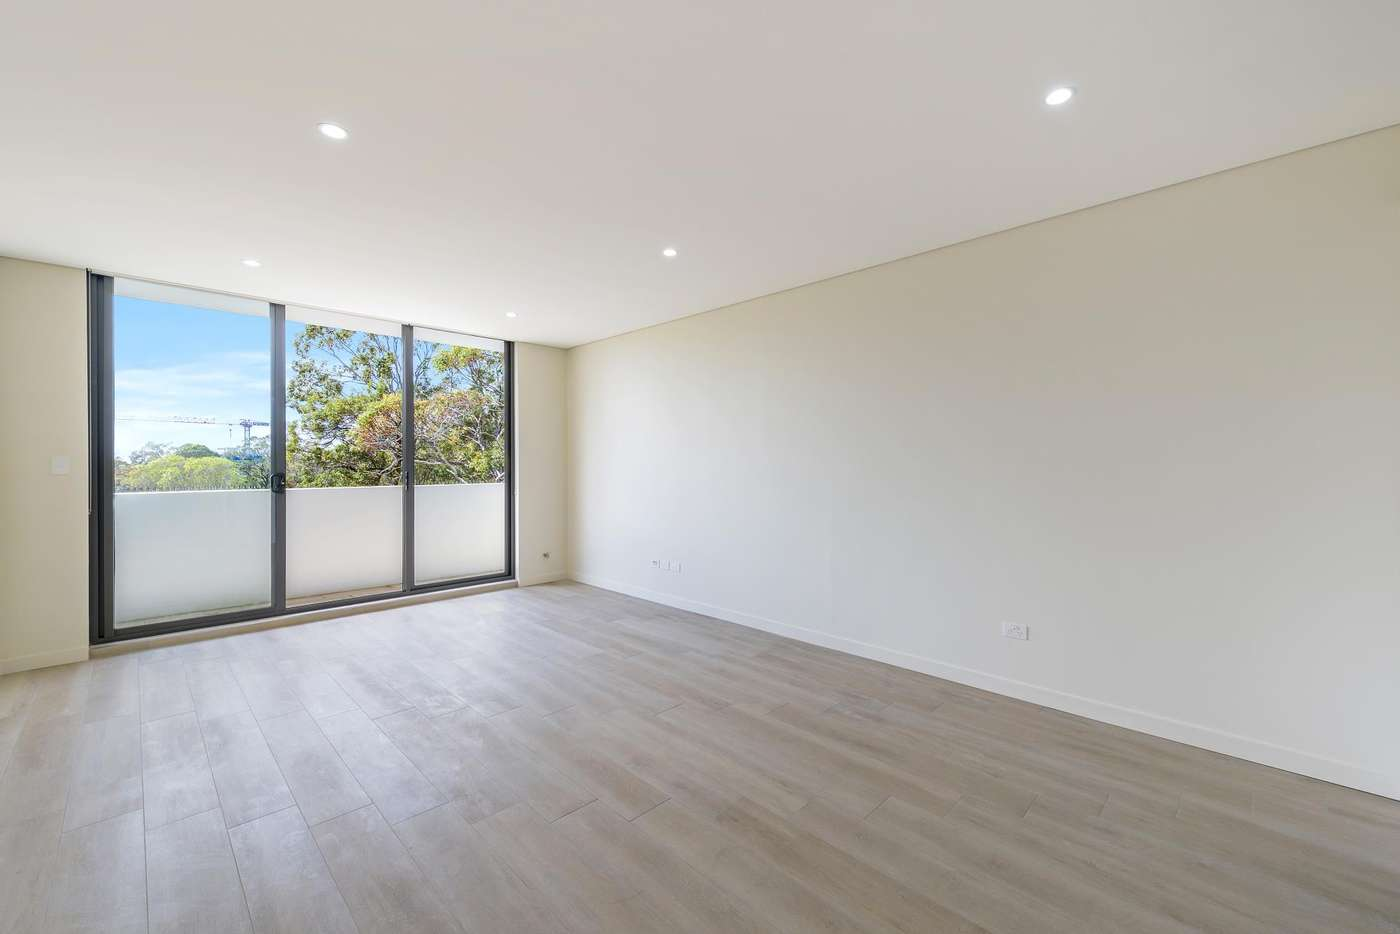 Main view of Homely apartment listing, 101/320 Taren Point Road, Caringbah NSW 2229